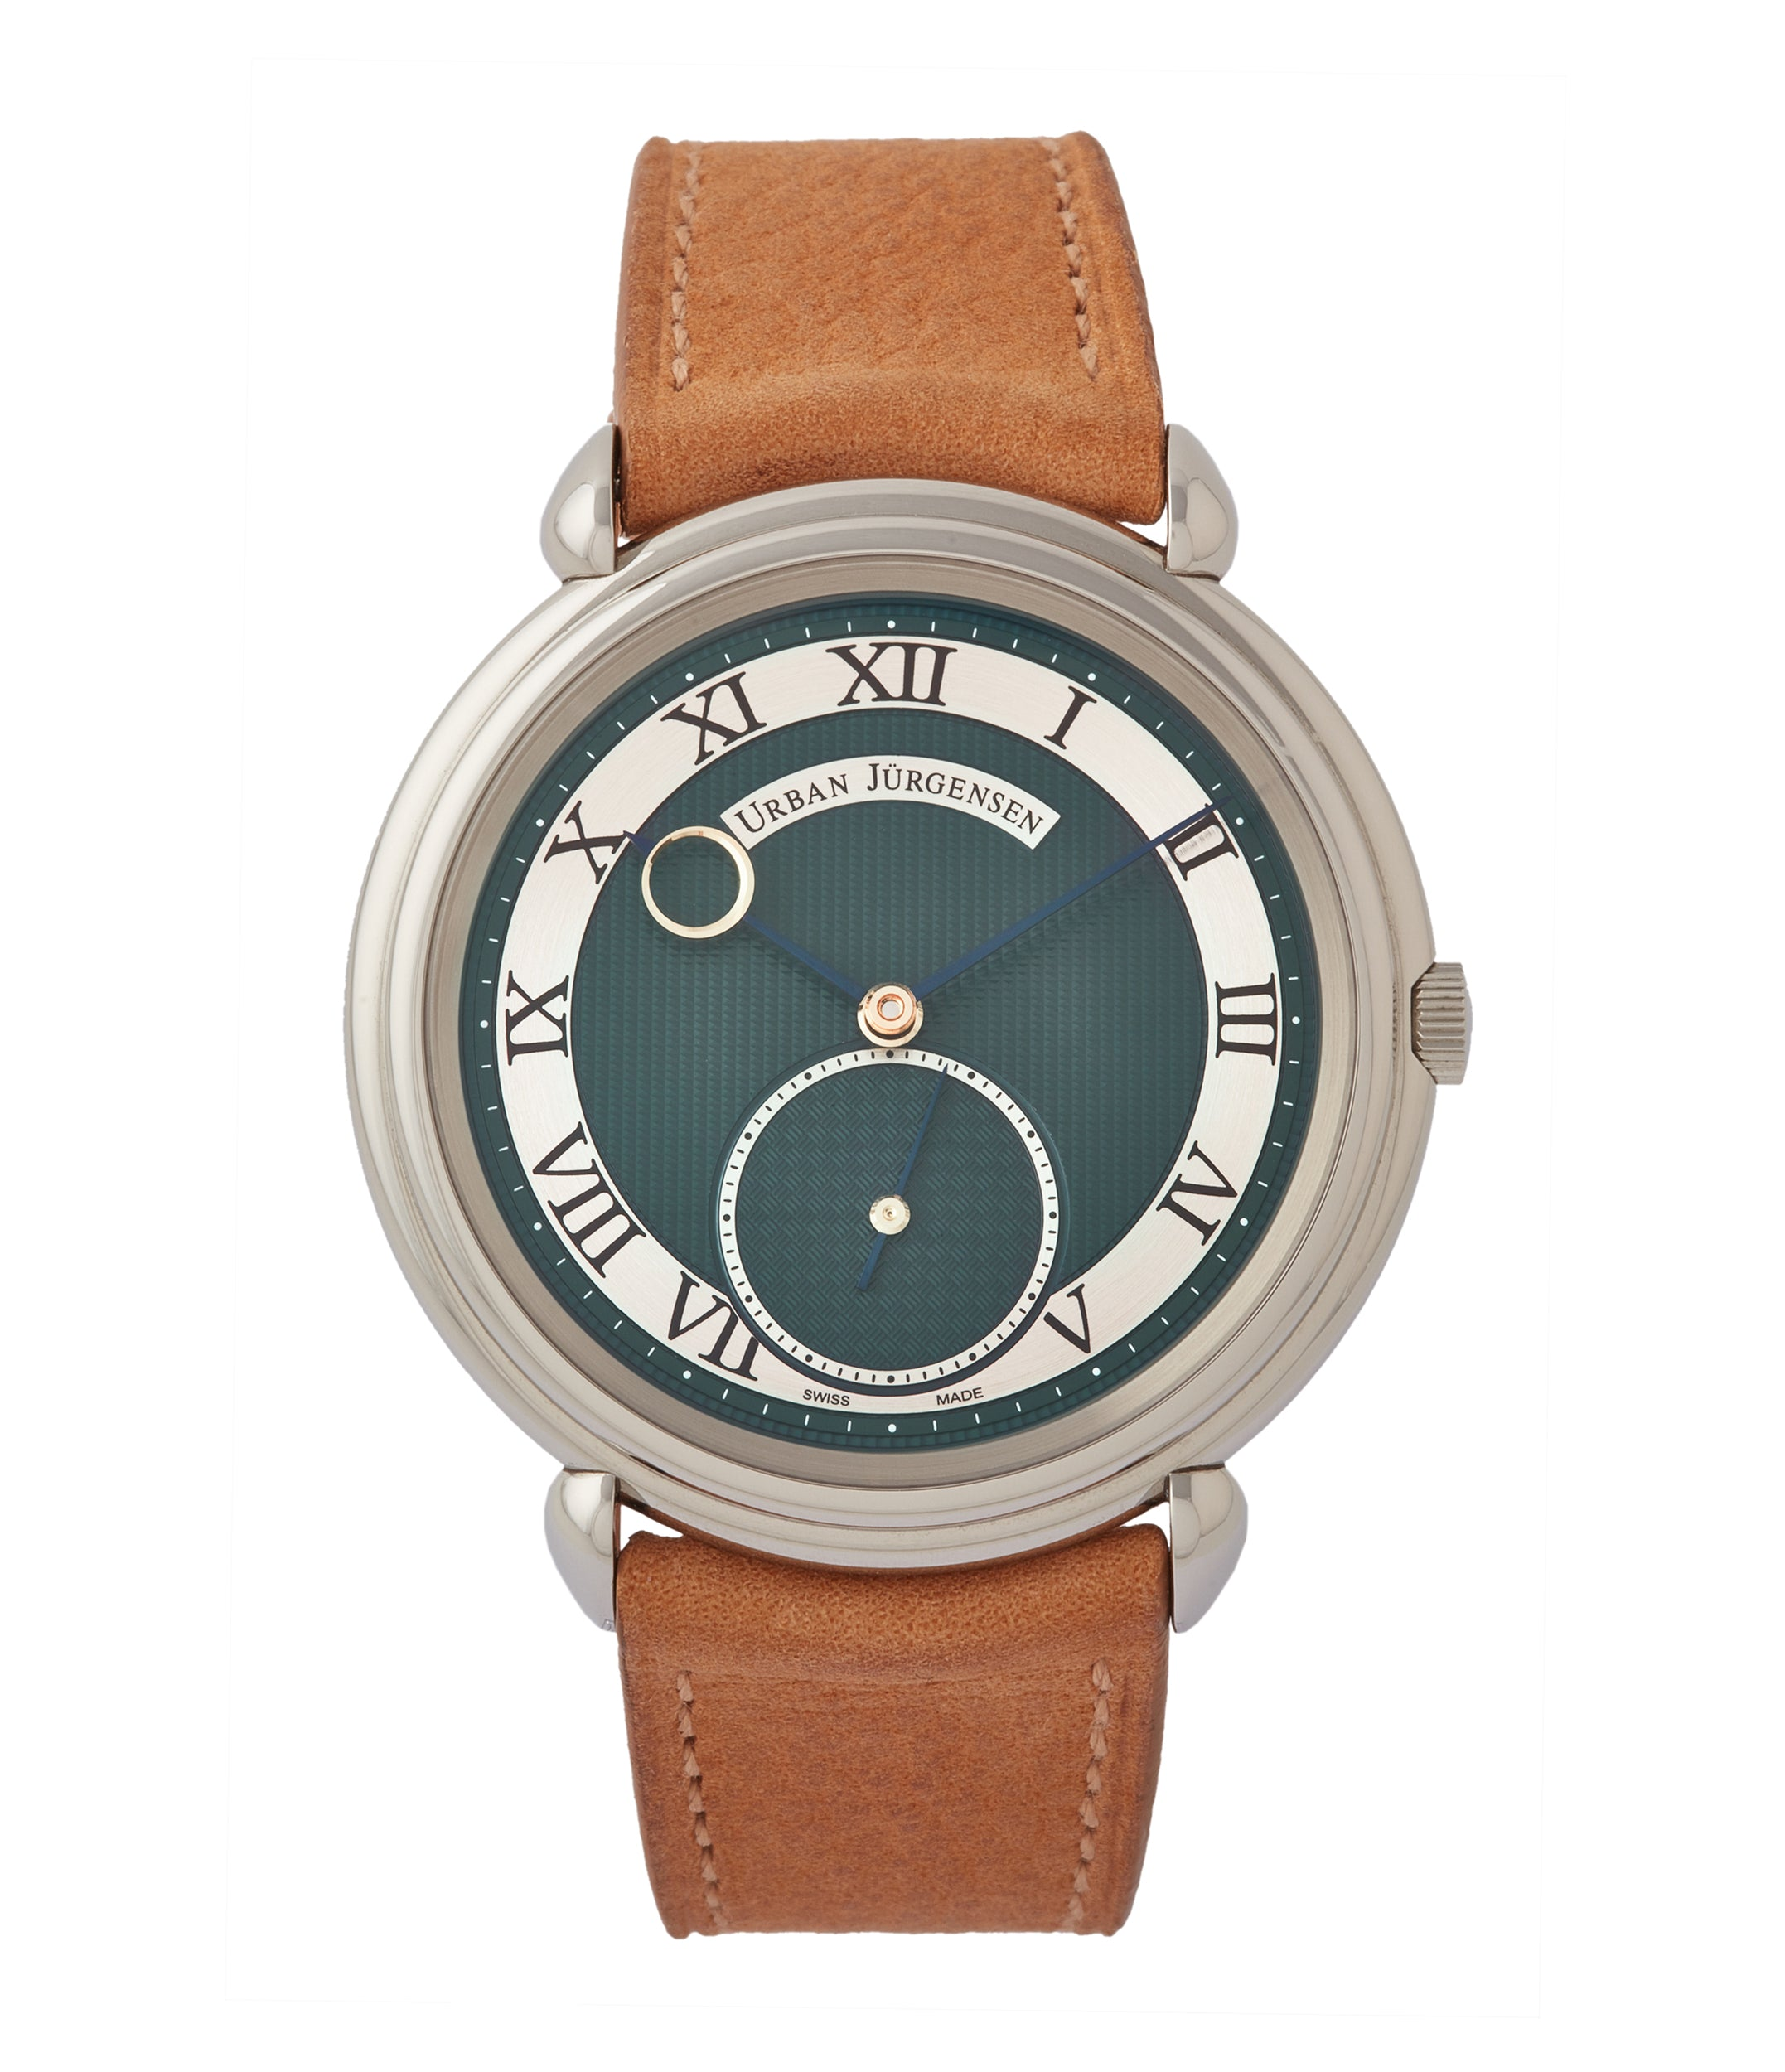 Buy London Limited Edition Urban Jürgensen British racing green dial steel time-only dress watch for sale exclusively at A Collected Man London